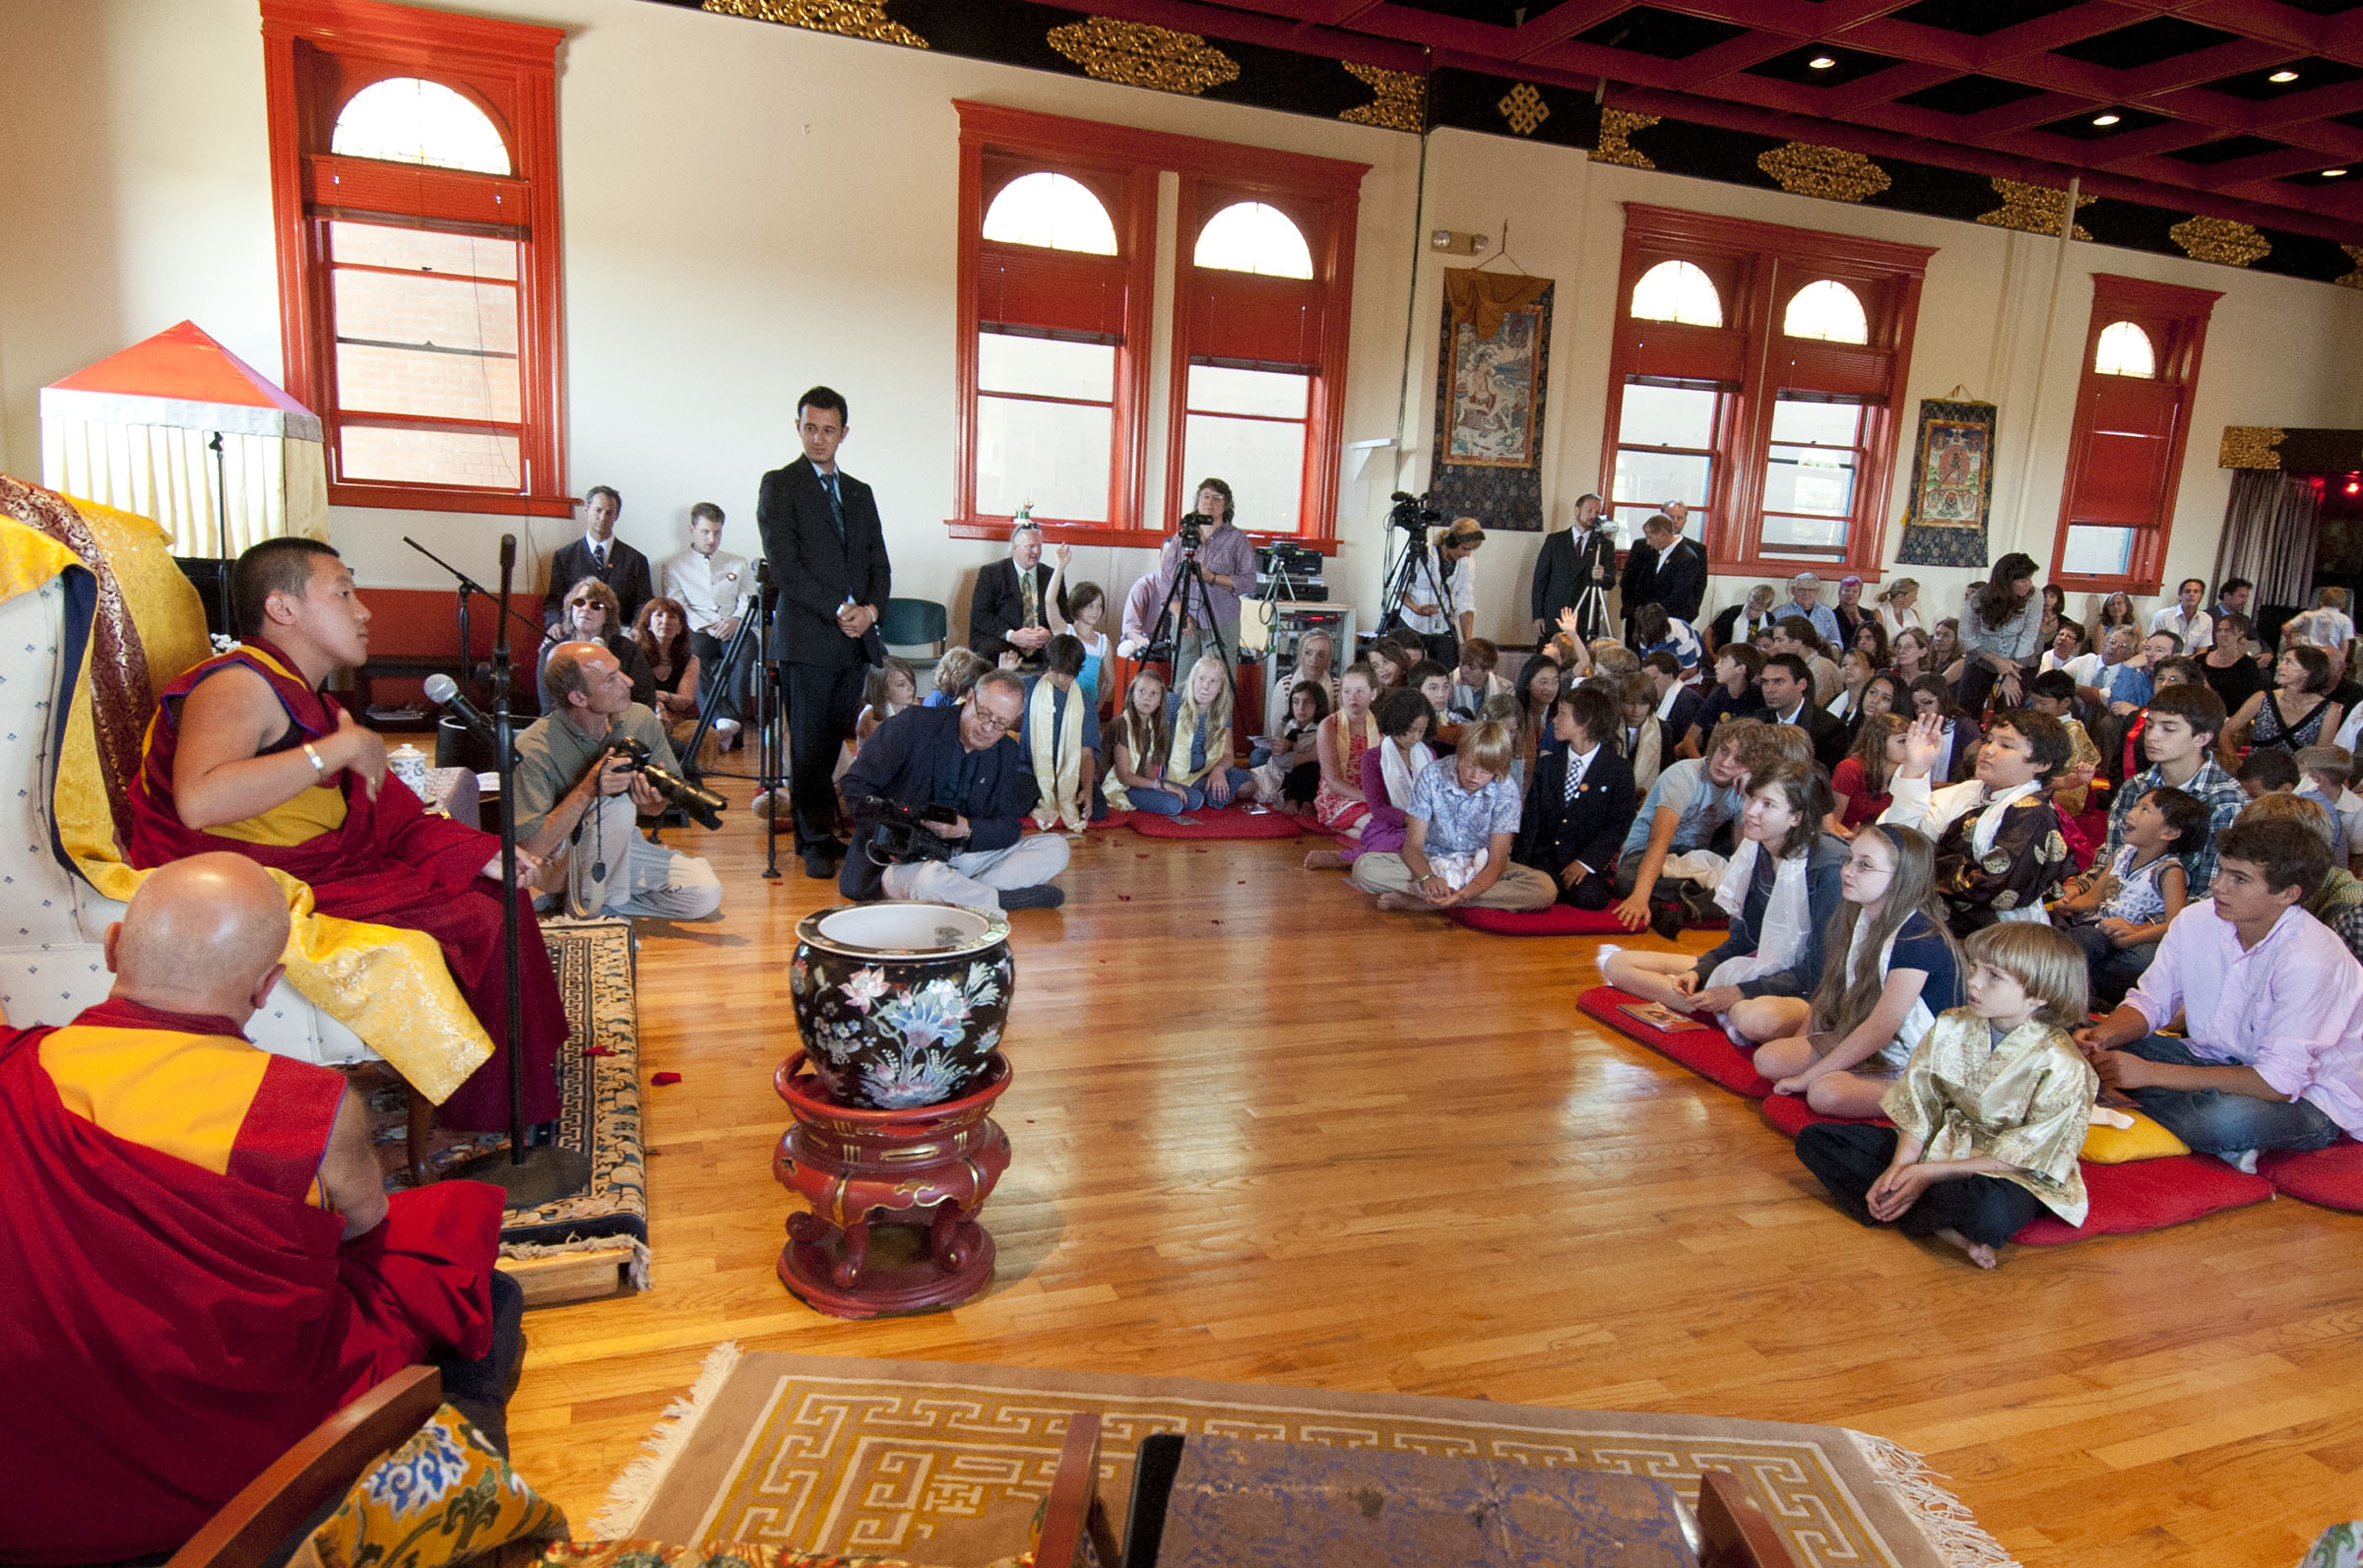 Children's Blessing with Yangsi Rinpoche. Photo by Marv Ross.